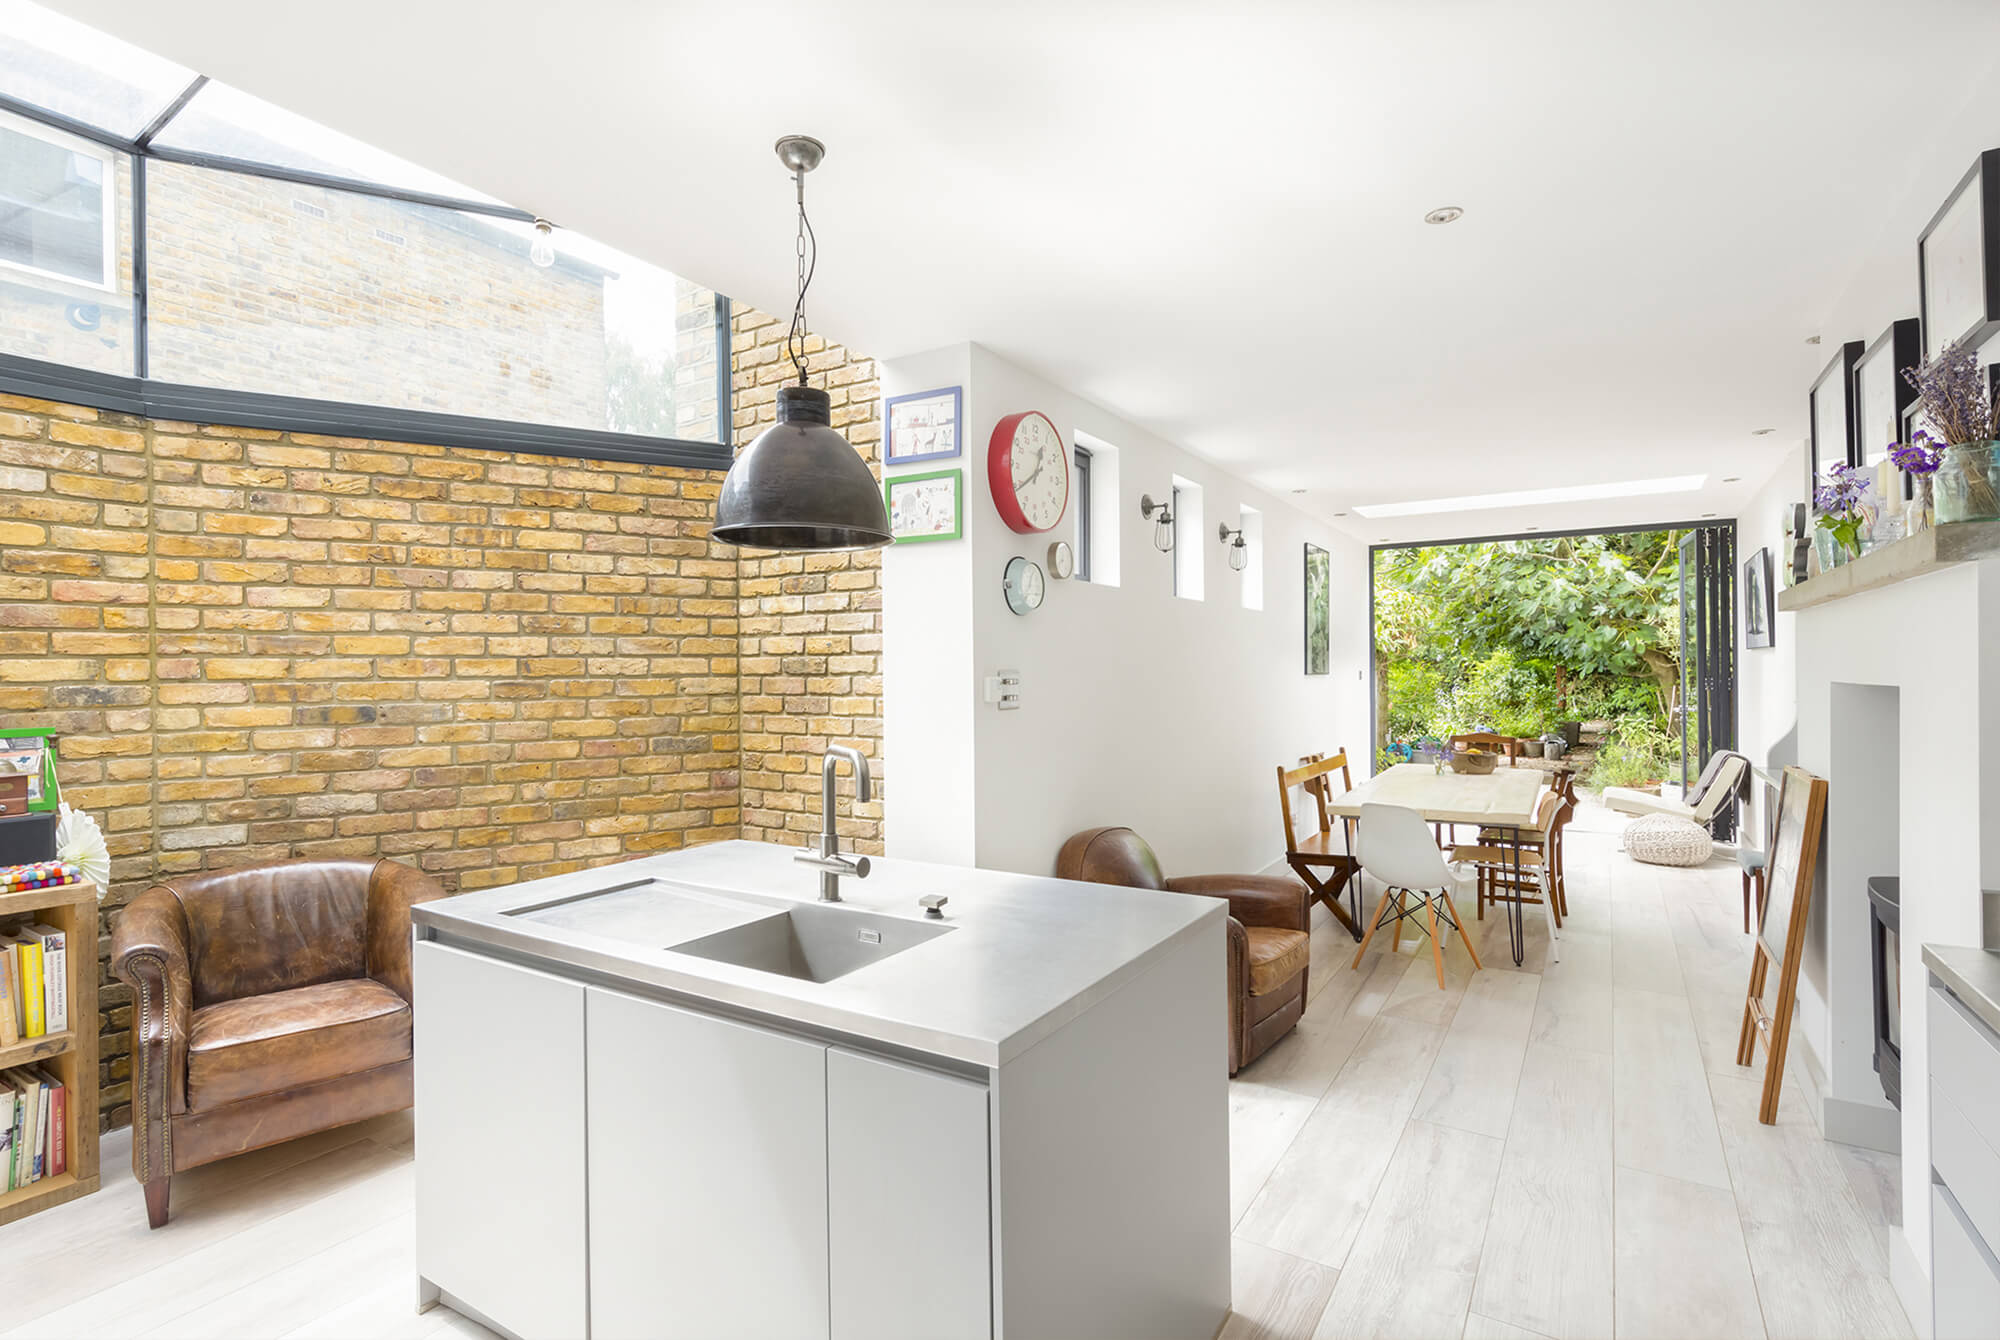 Marguerite Murdoch Architects - Based in Teddington, Richmond Upon Thames - Kitchen Extension and Glass Skylights